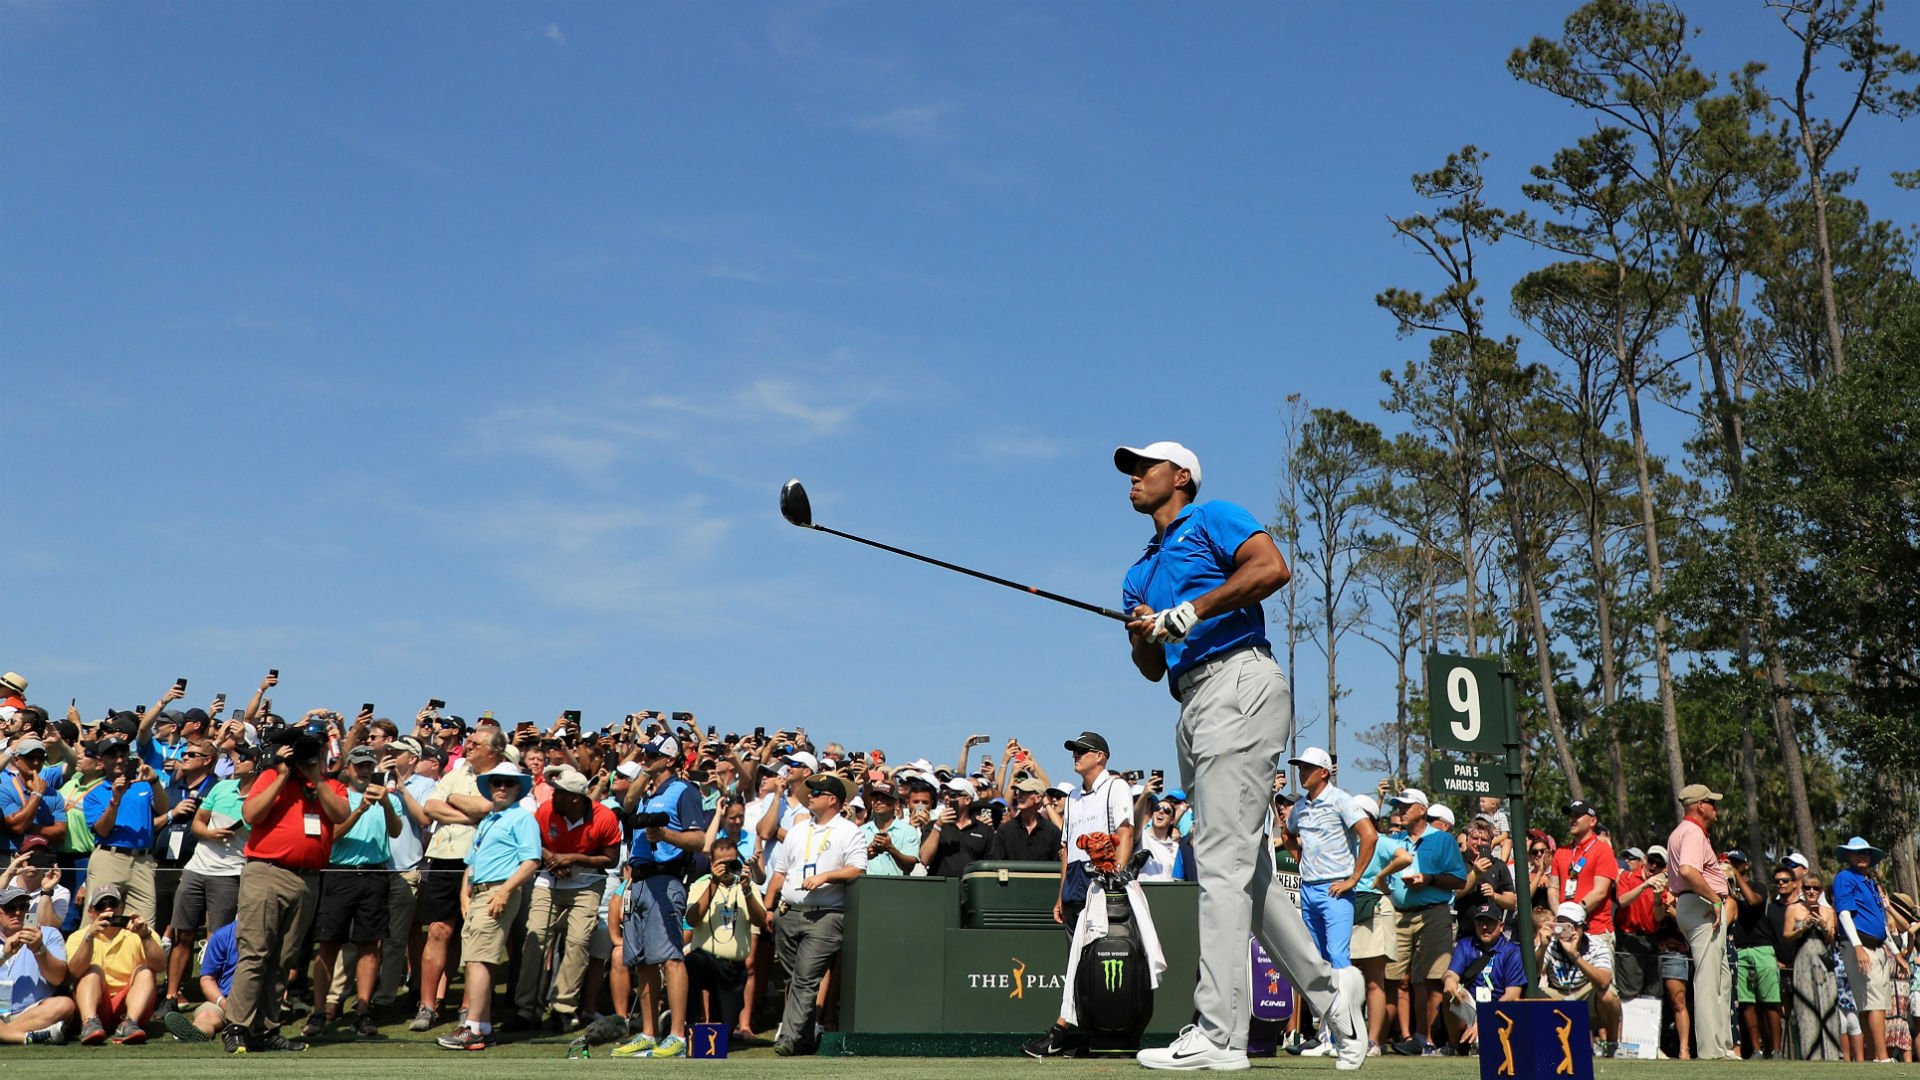 Tiger Woods on Players rally: This weekend was more like it